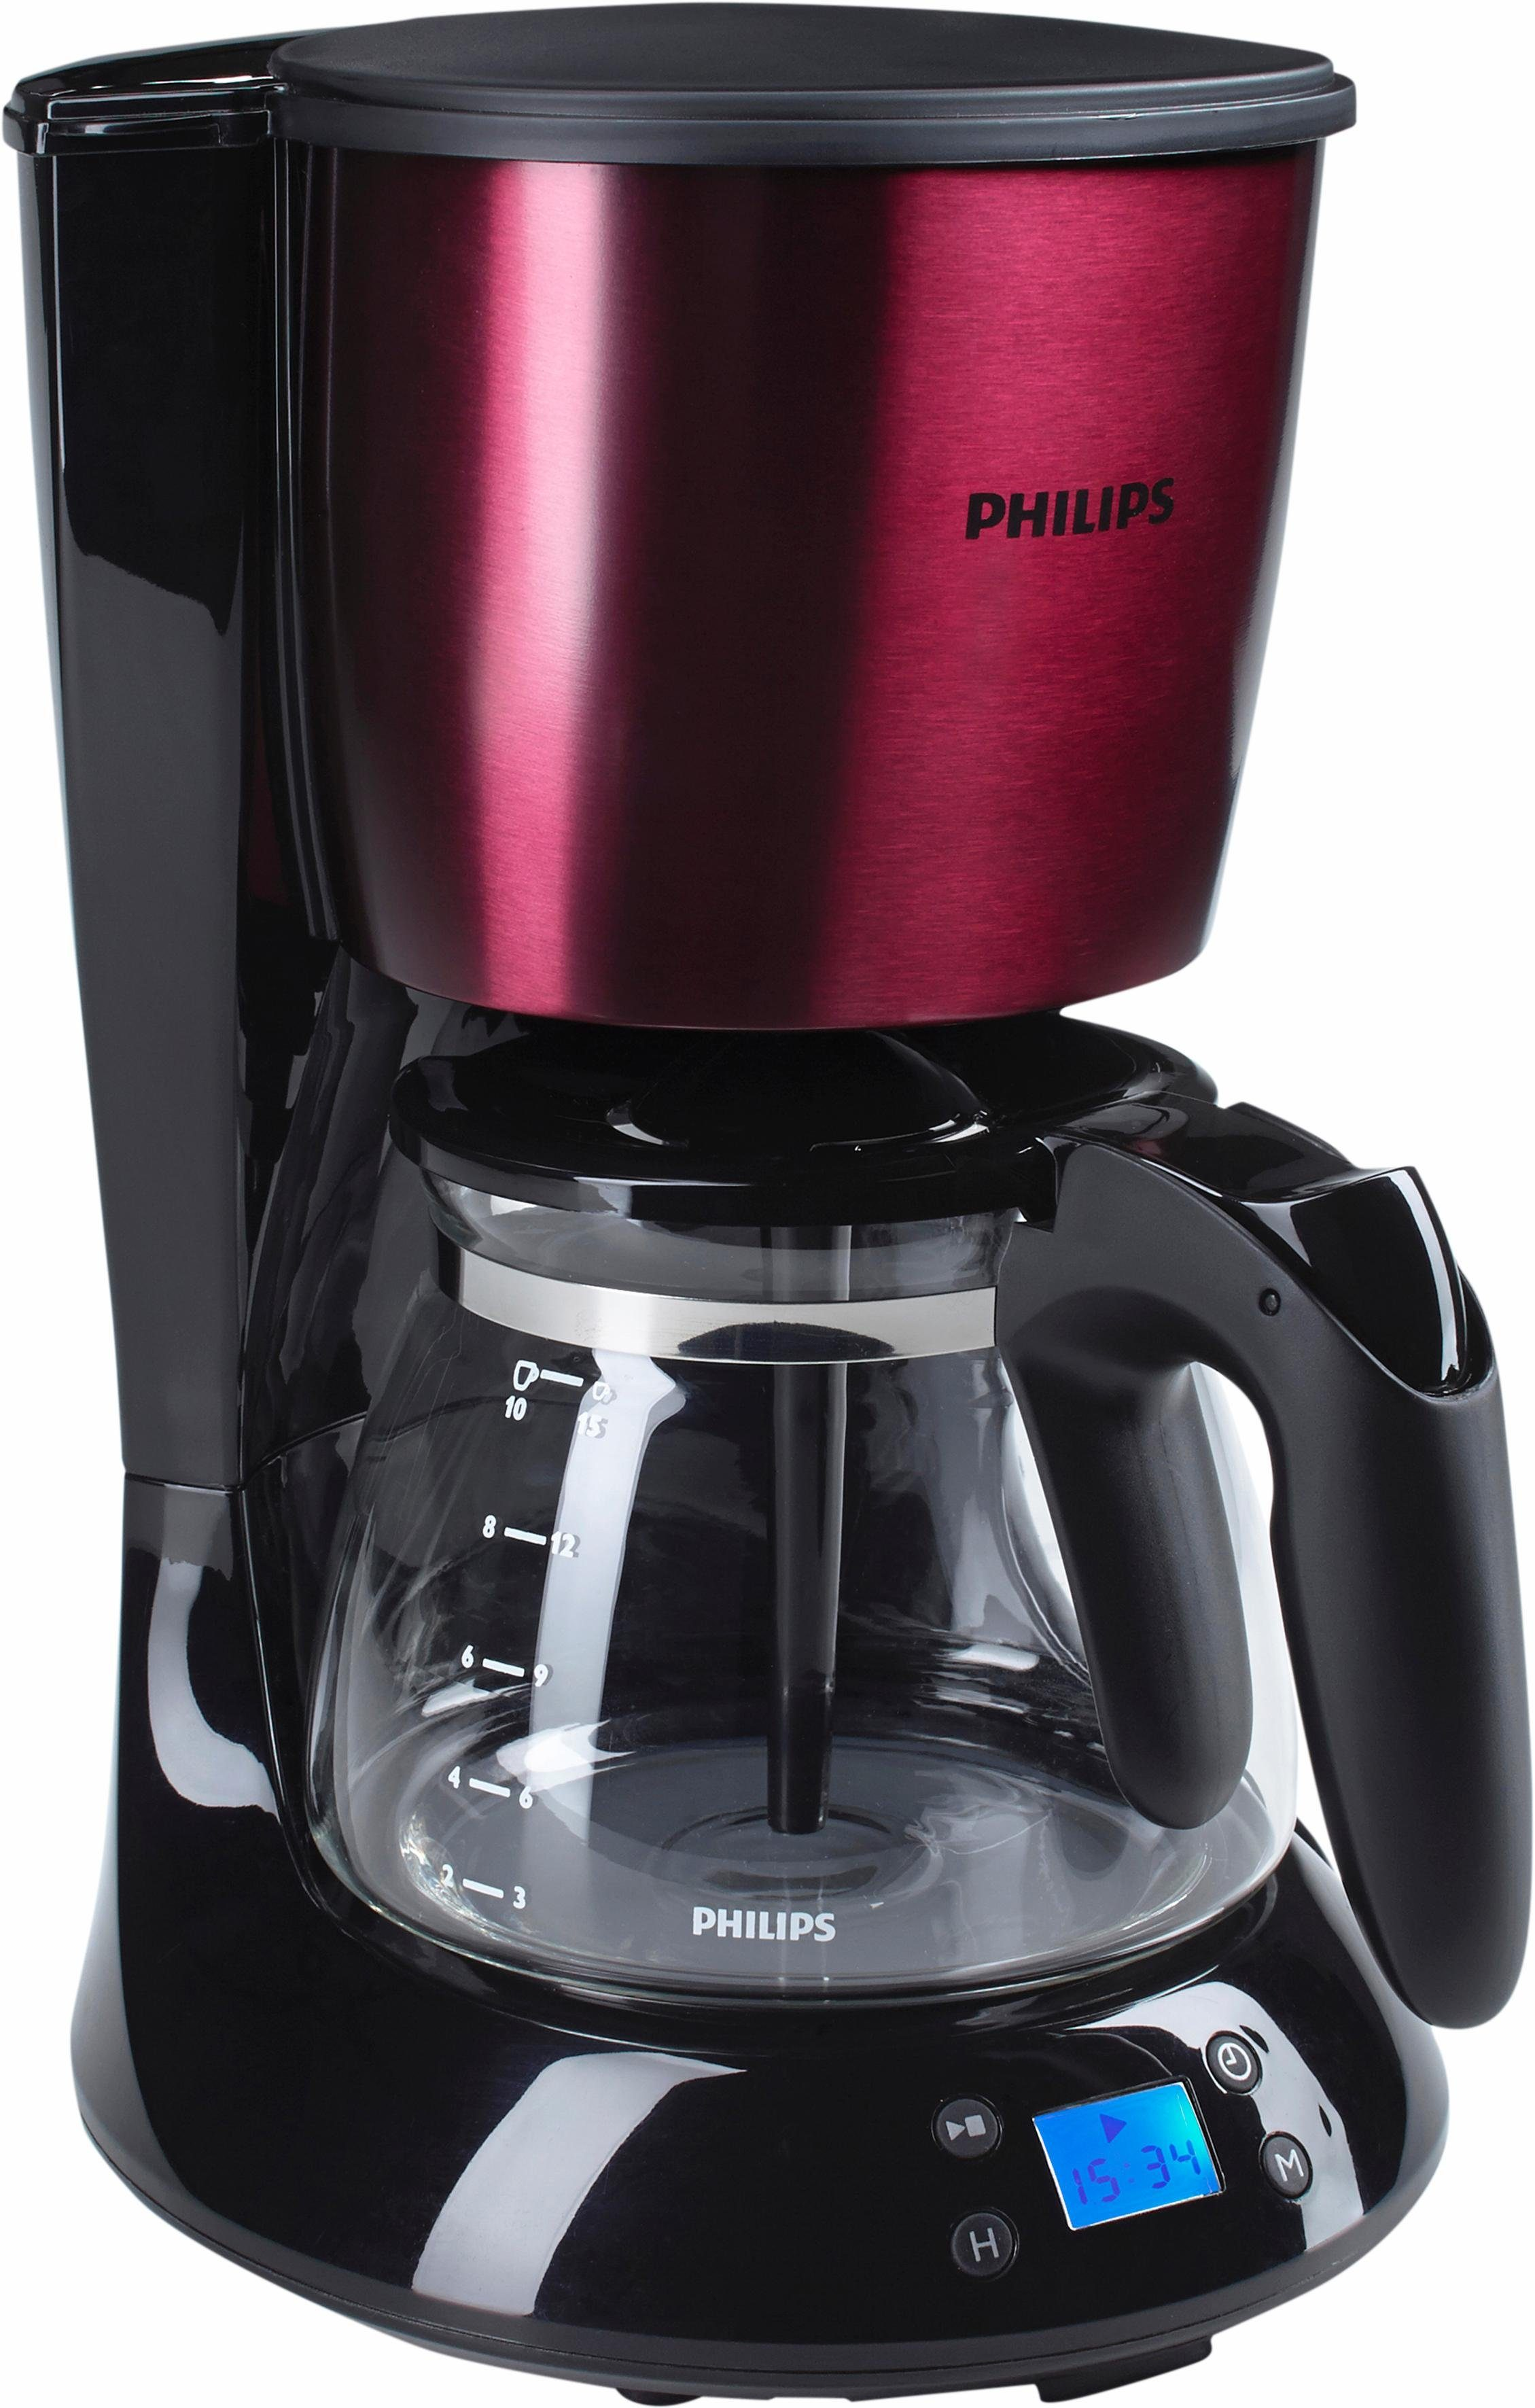 Philips Filterkaffeemaschine HD7459/31 Daily Collection, 1,2l Kaffeekanne, Papierfilter